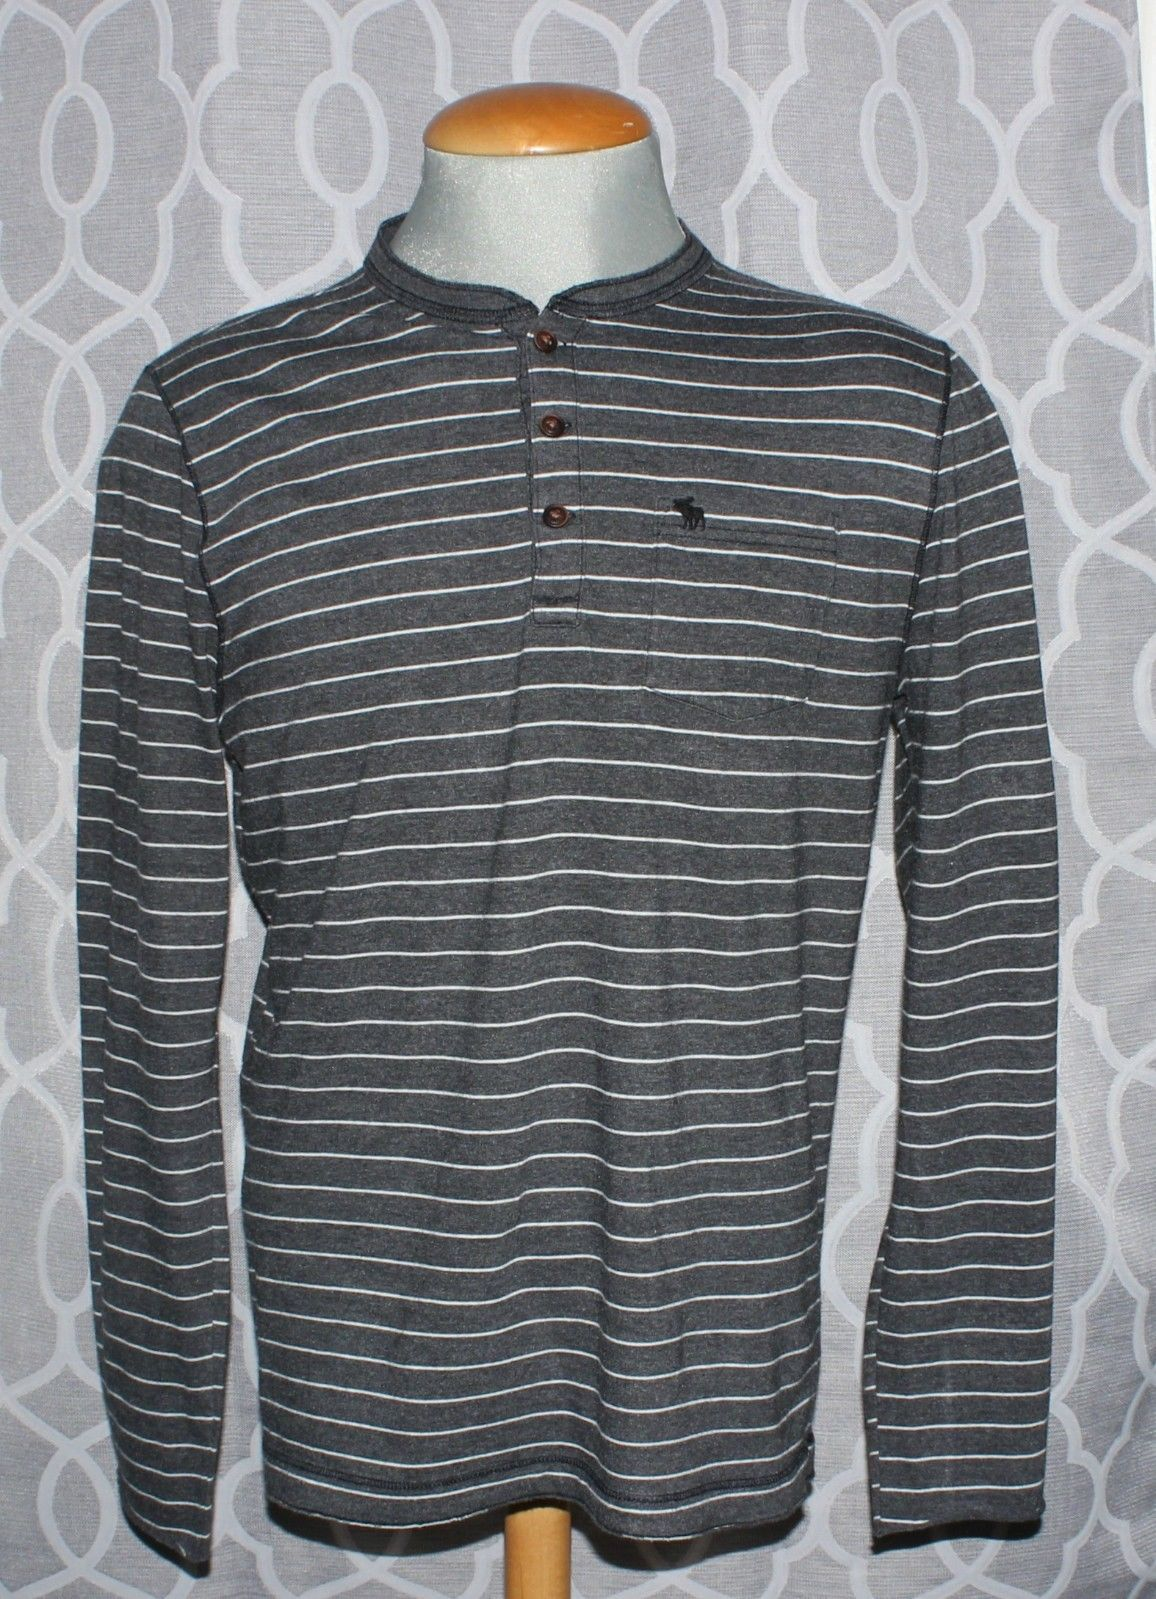 Abercrombie & Fitch Gray Striped Long Sleeve Casual Muscle Shirt Men's Size L